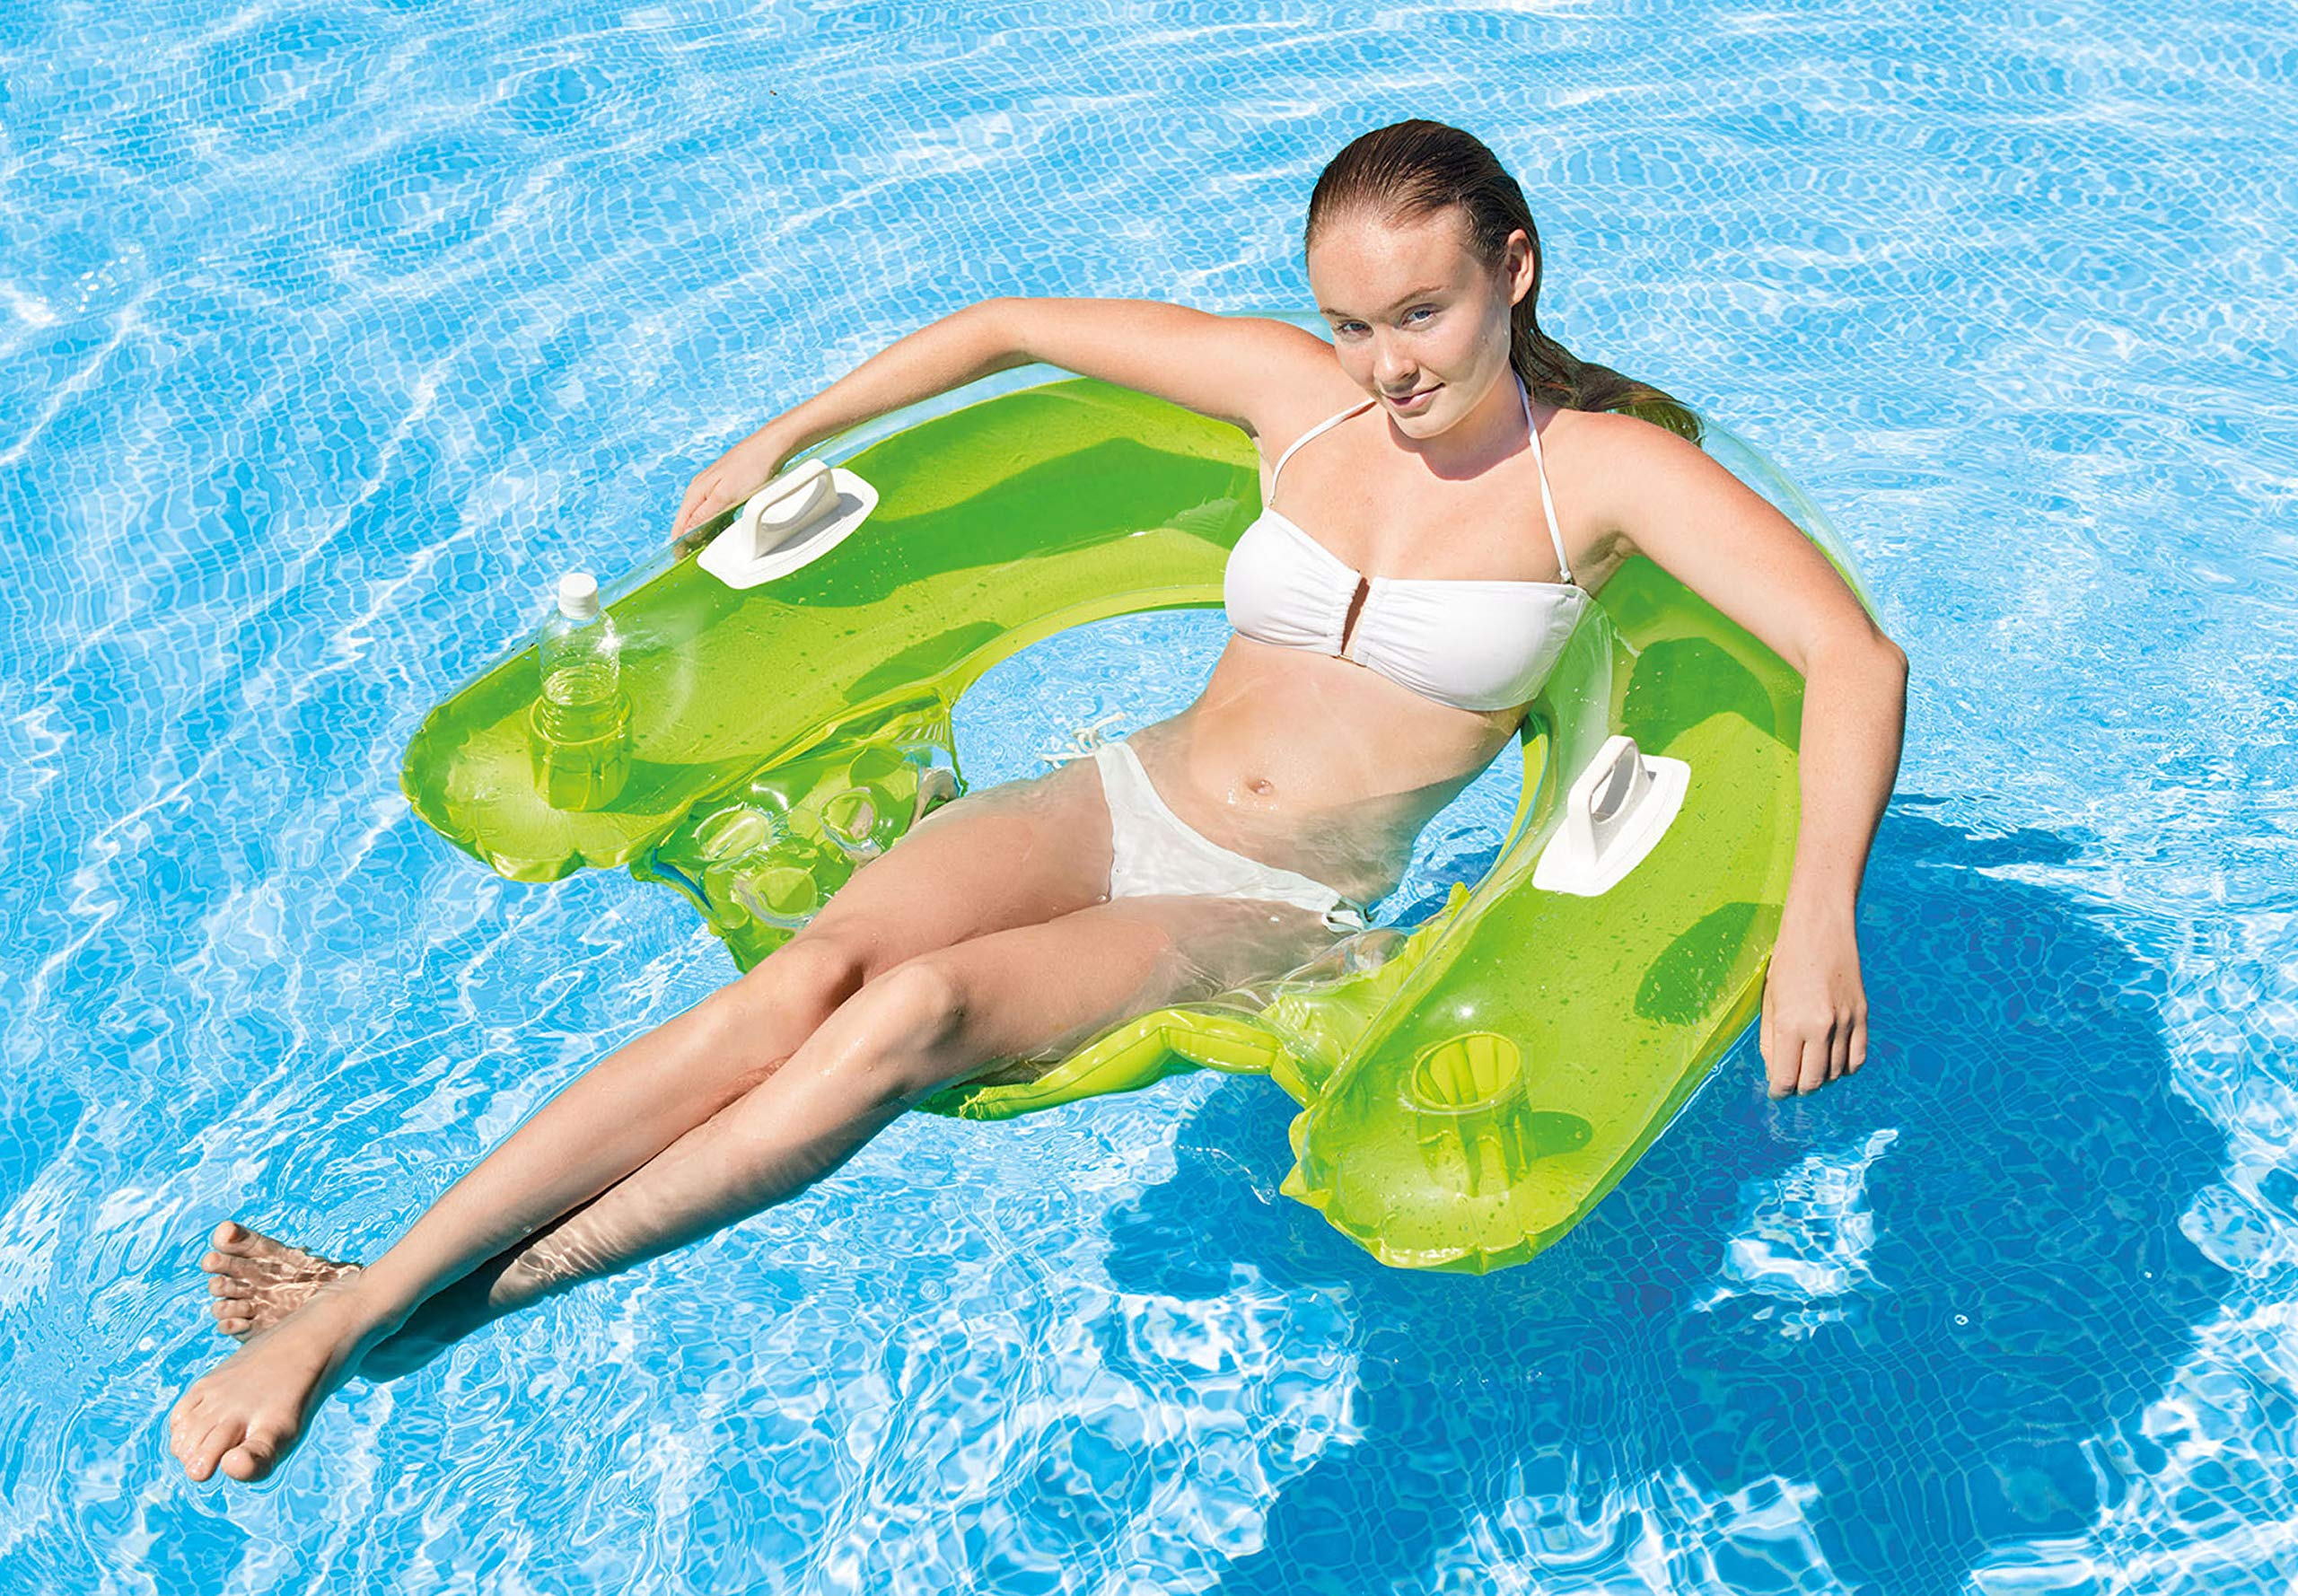 Intex 58859NP Asiento para Piscina, Unisex, Green/Orange, 152 x 99 cm: Amazon.es: Deportes y aire libre